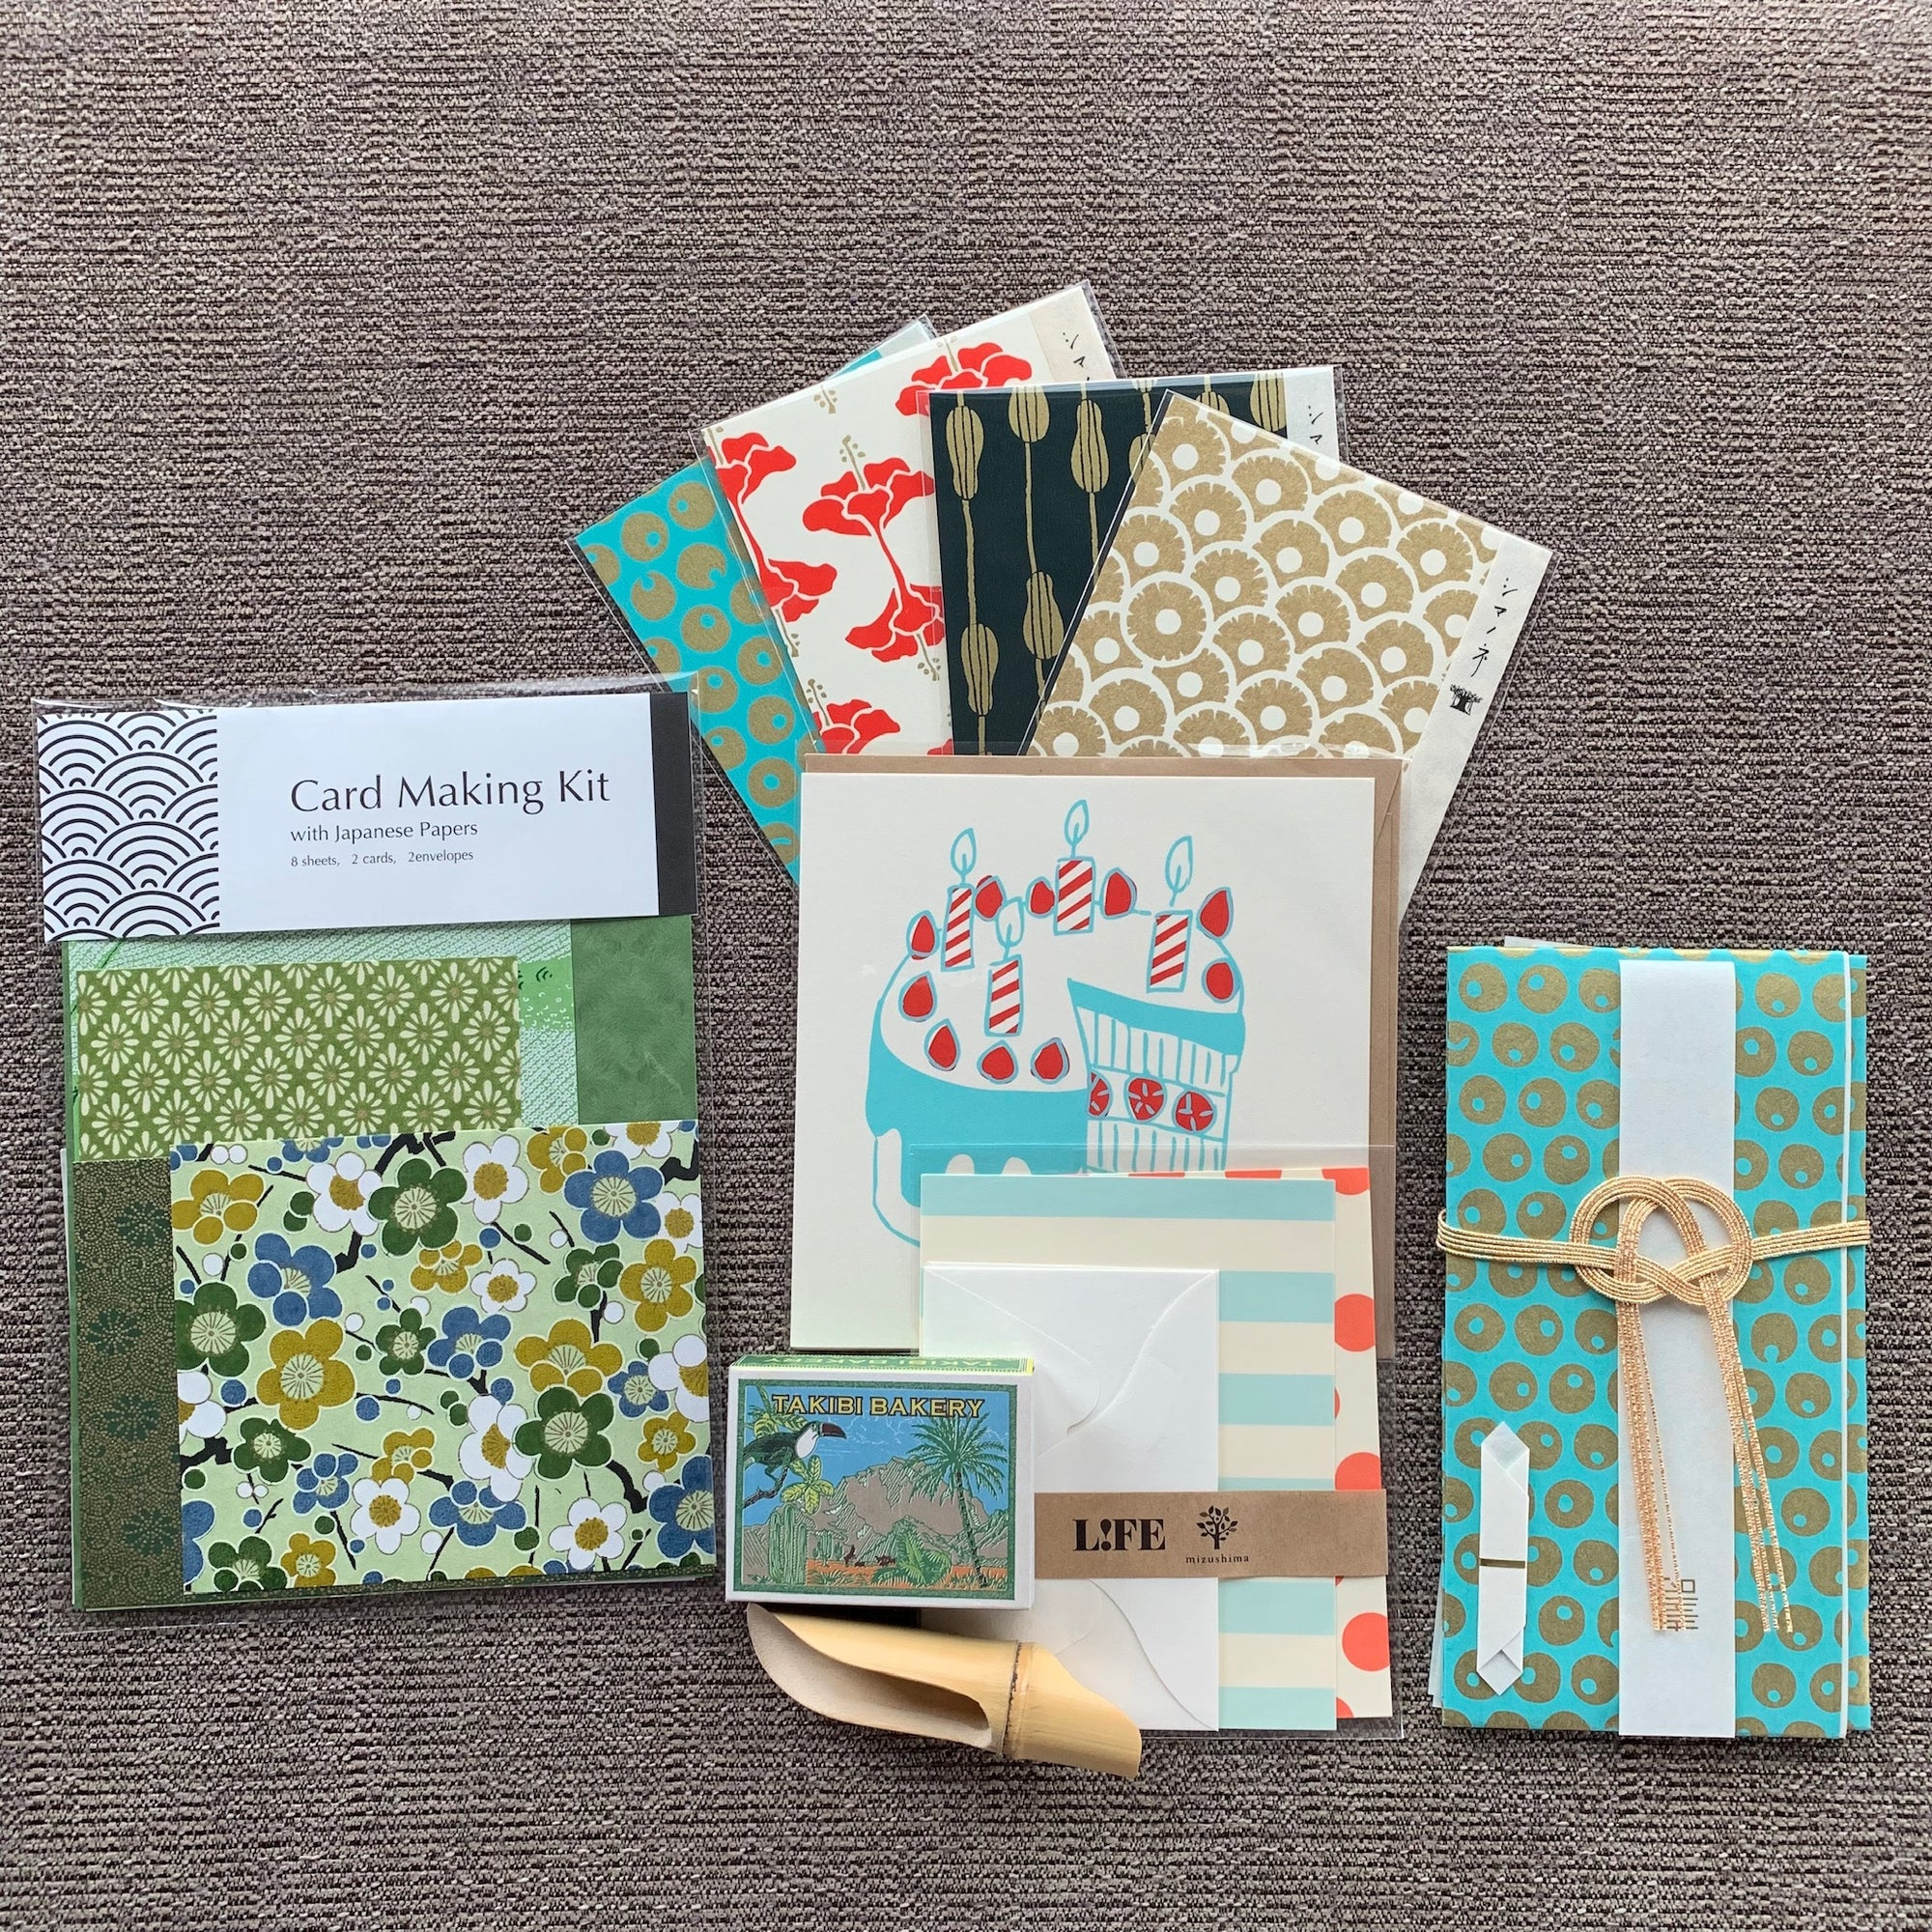 Japanese Stationery Tour: Our Top 10 Picks - Part I